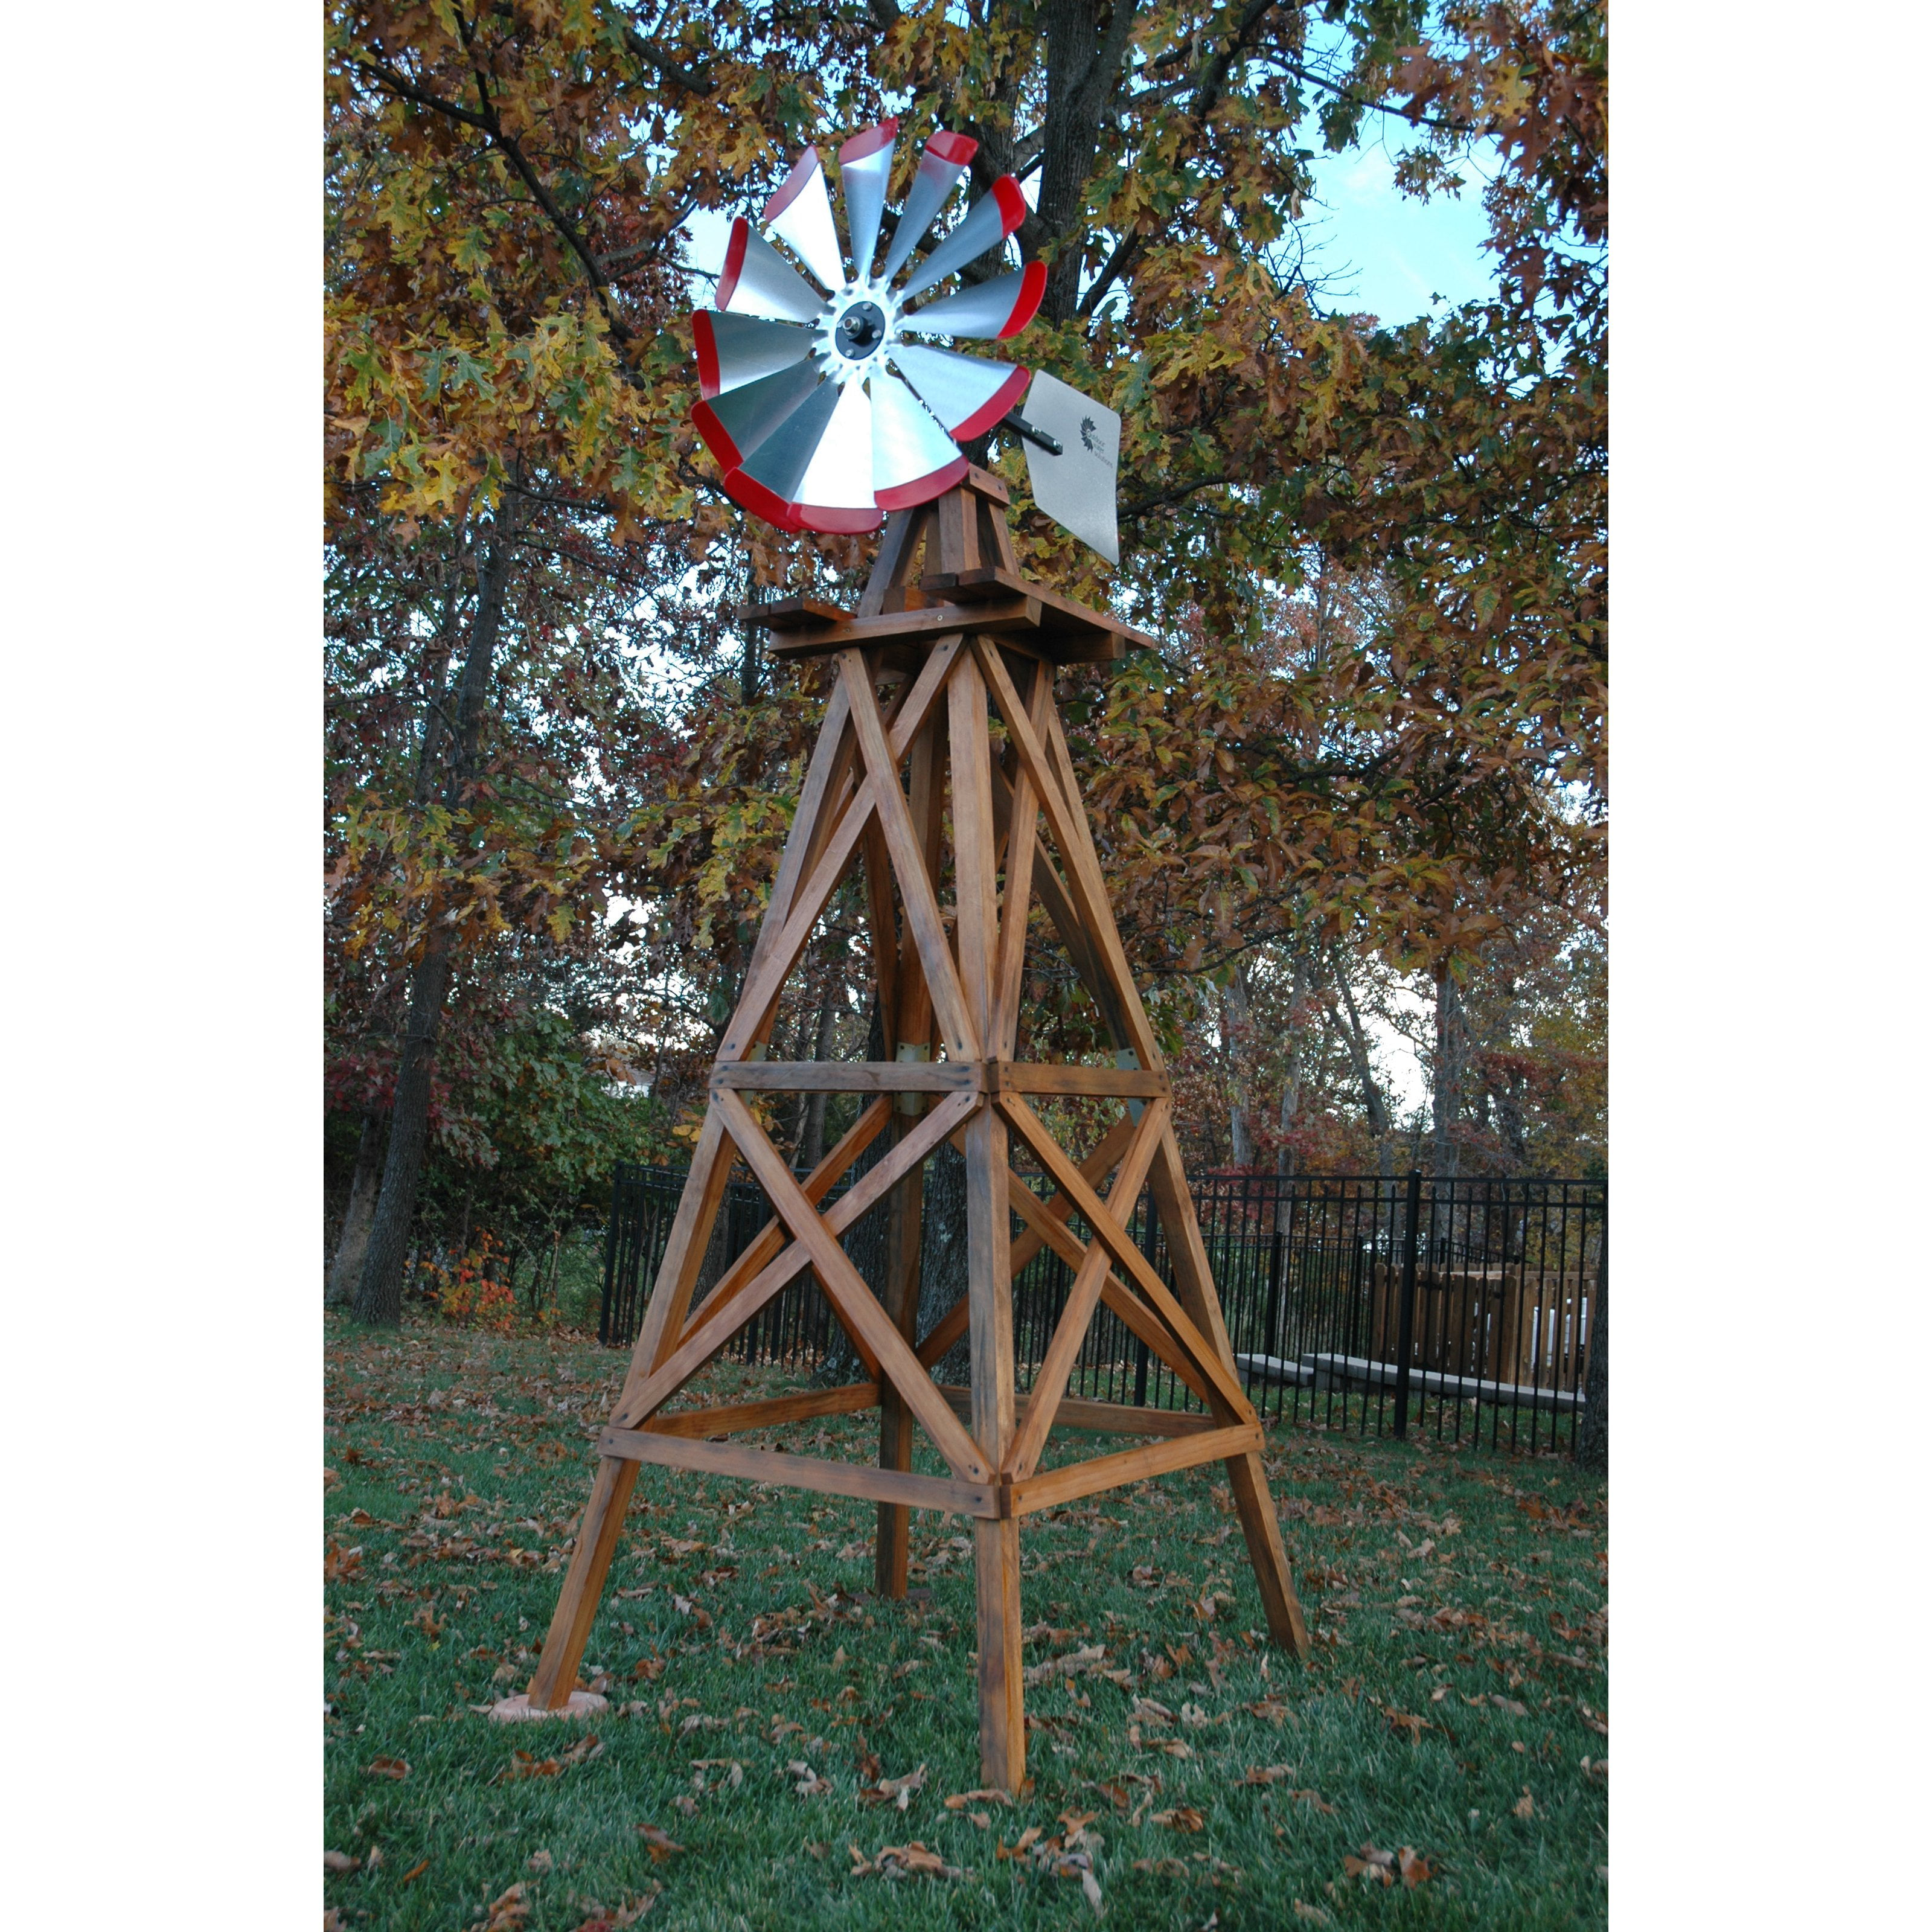 Decorative Red Wood Backyard Windmill 10 ft. by Outdoor Water Solutions